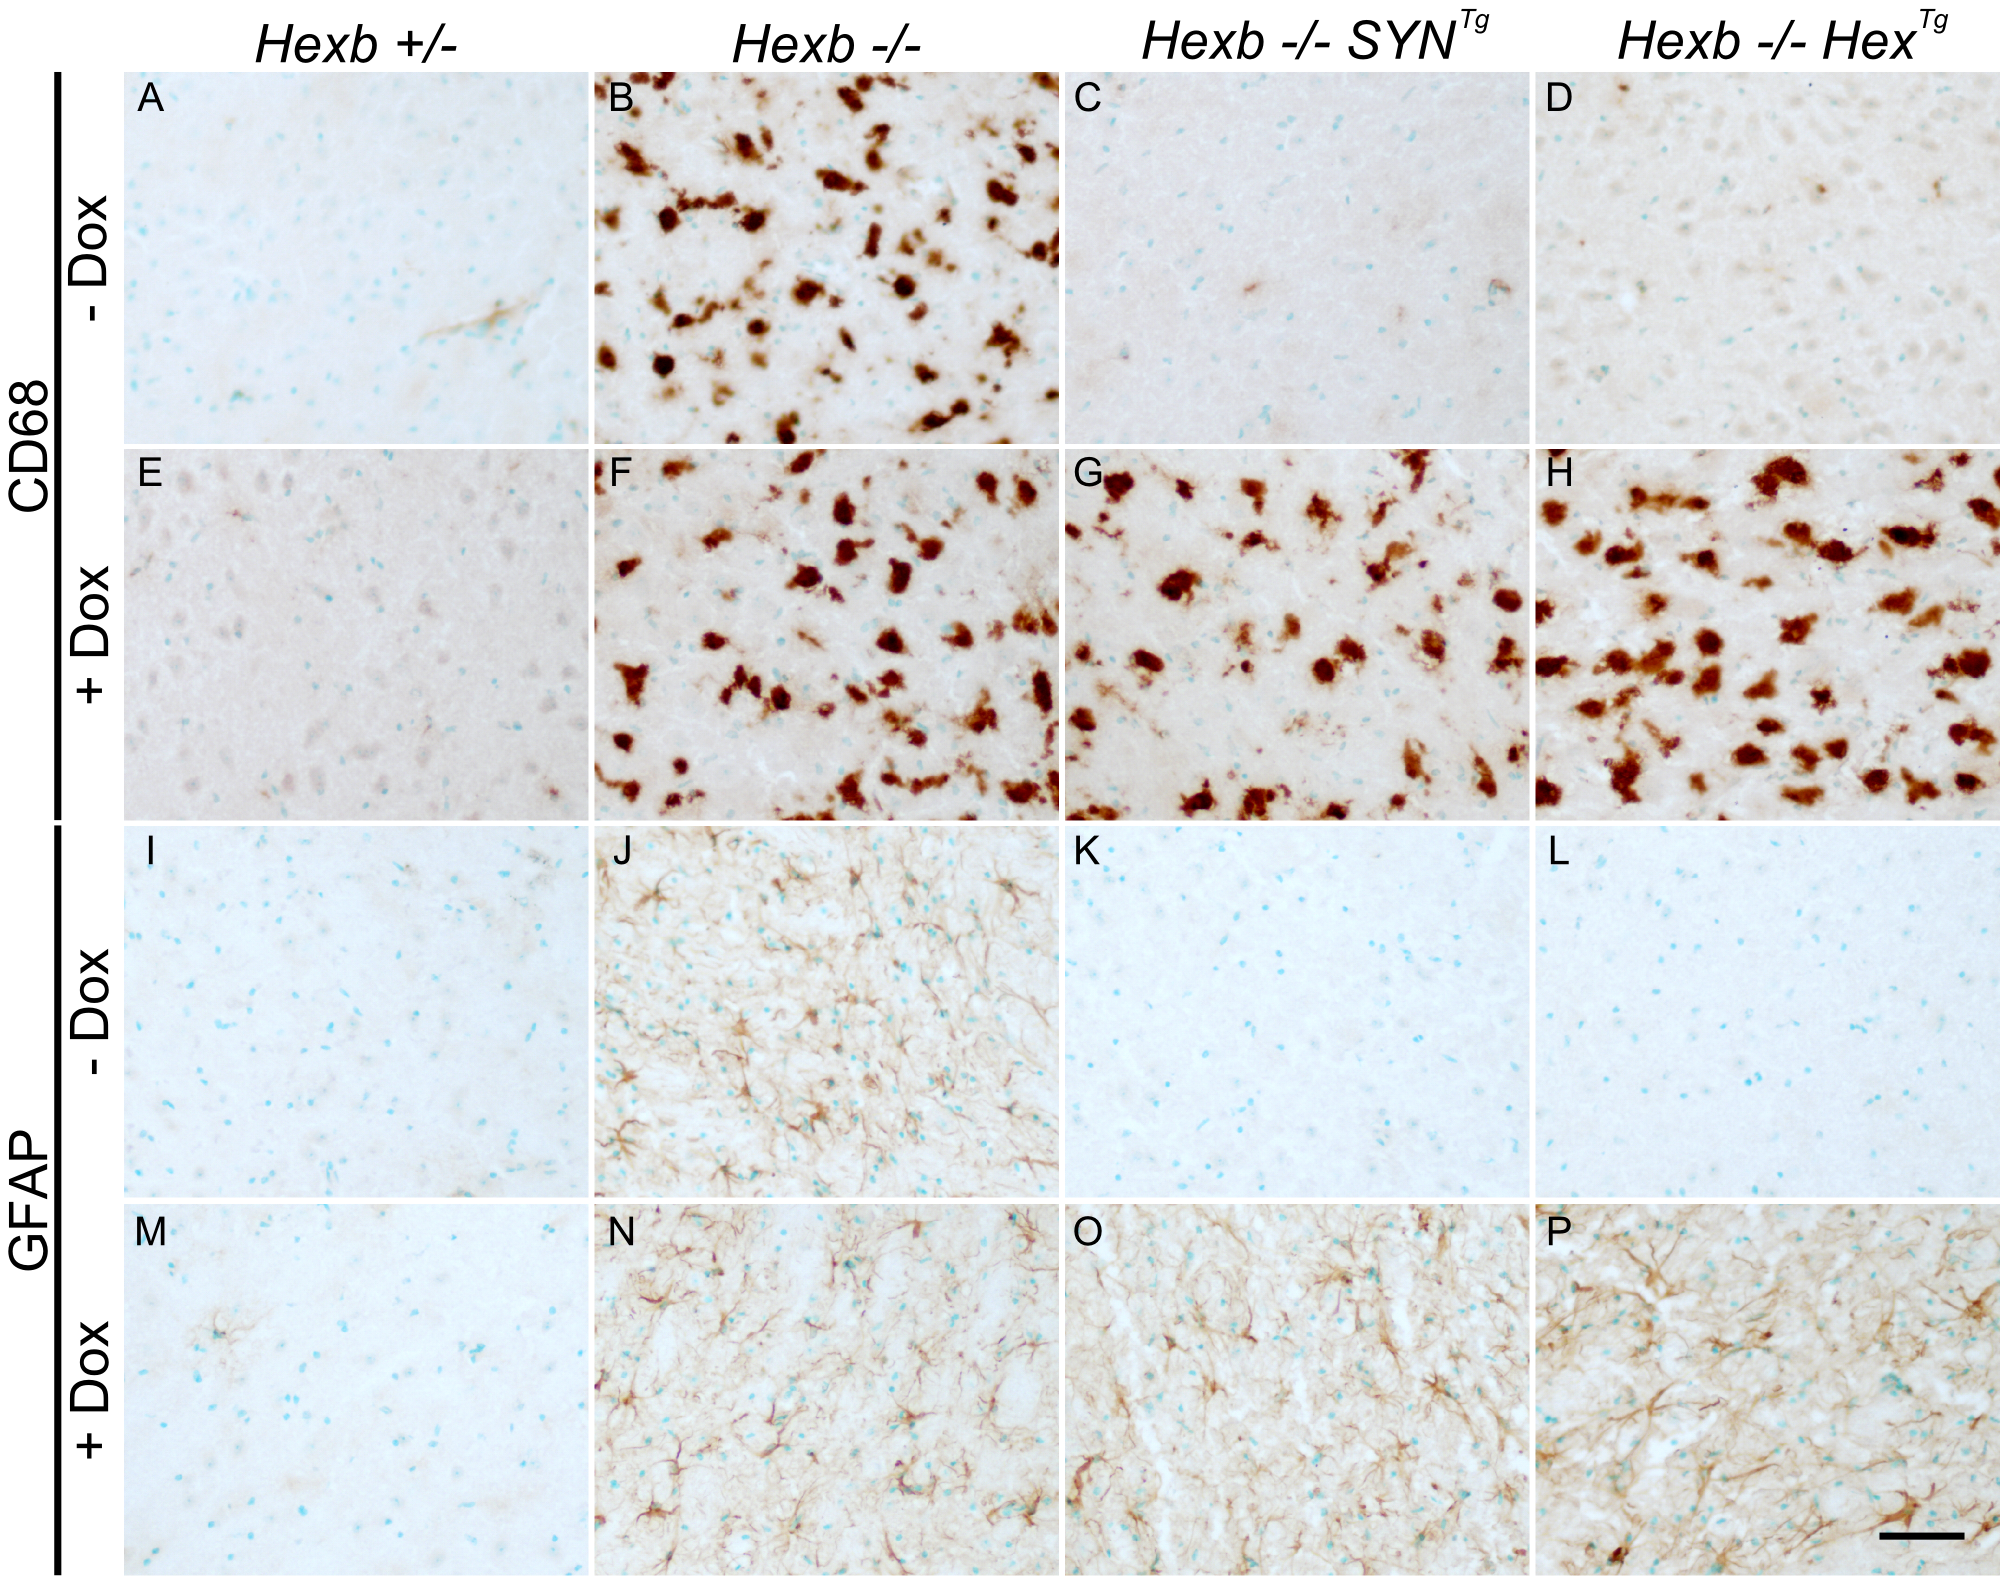 Induction of neuroinflammation by doxycycline-mediated suppression of transgenic <i>Hexb</i>.